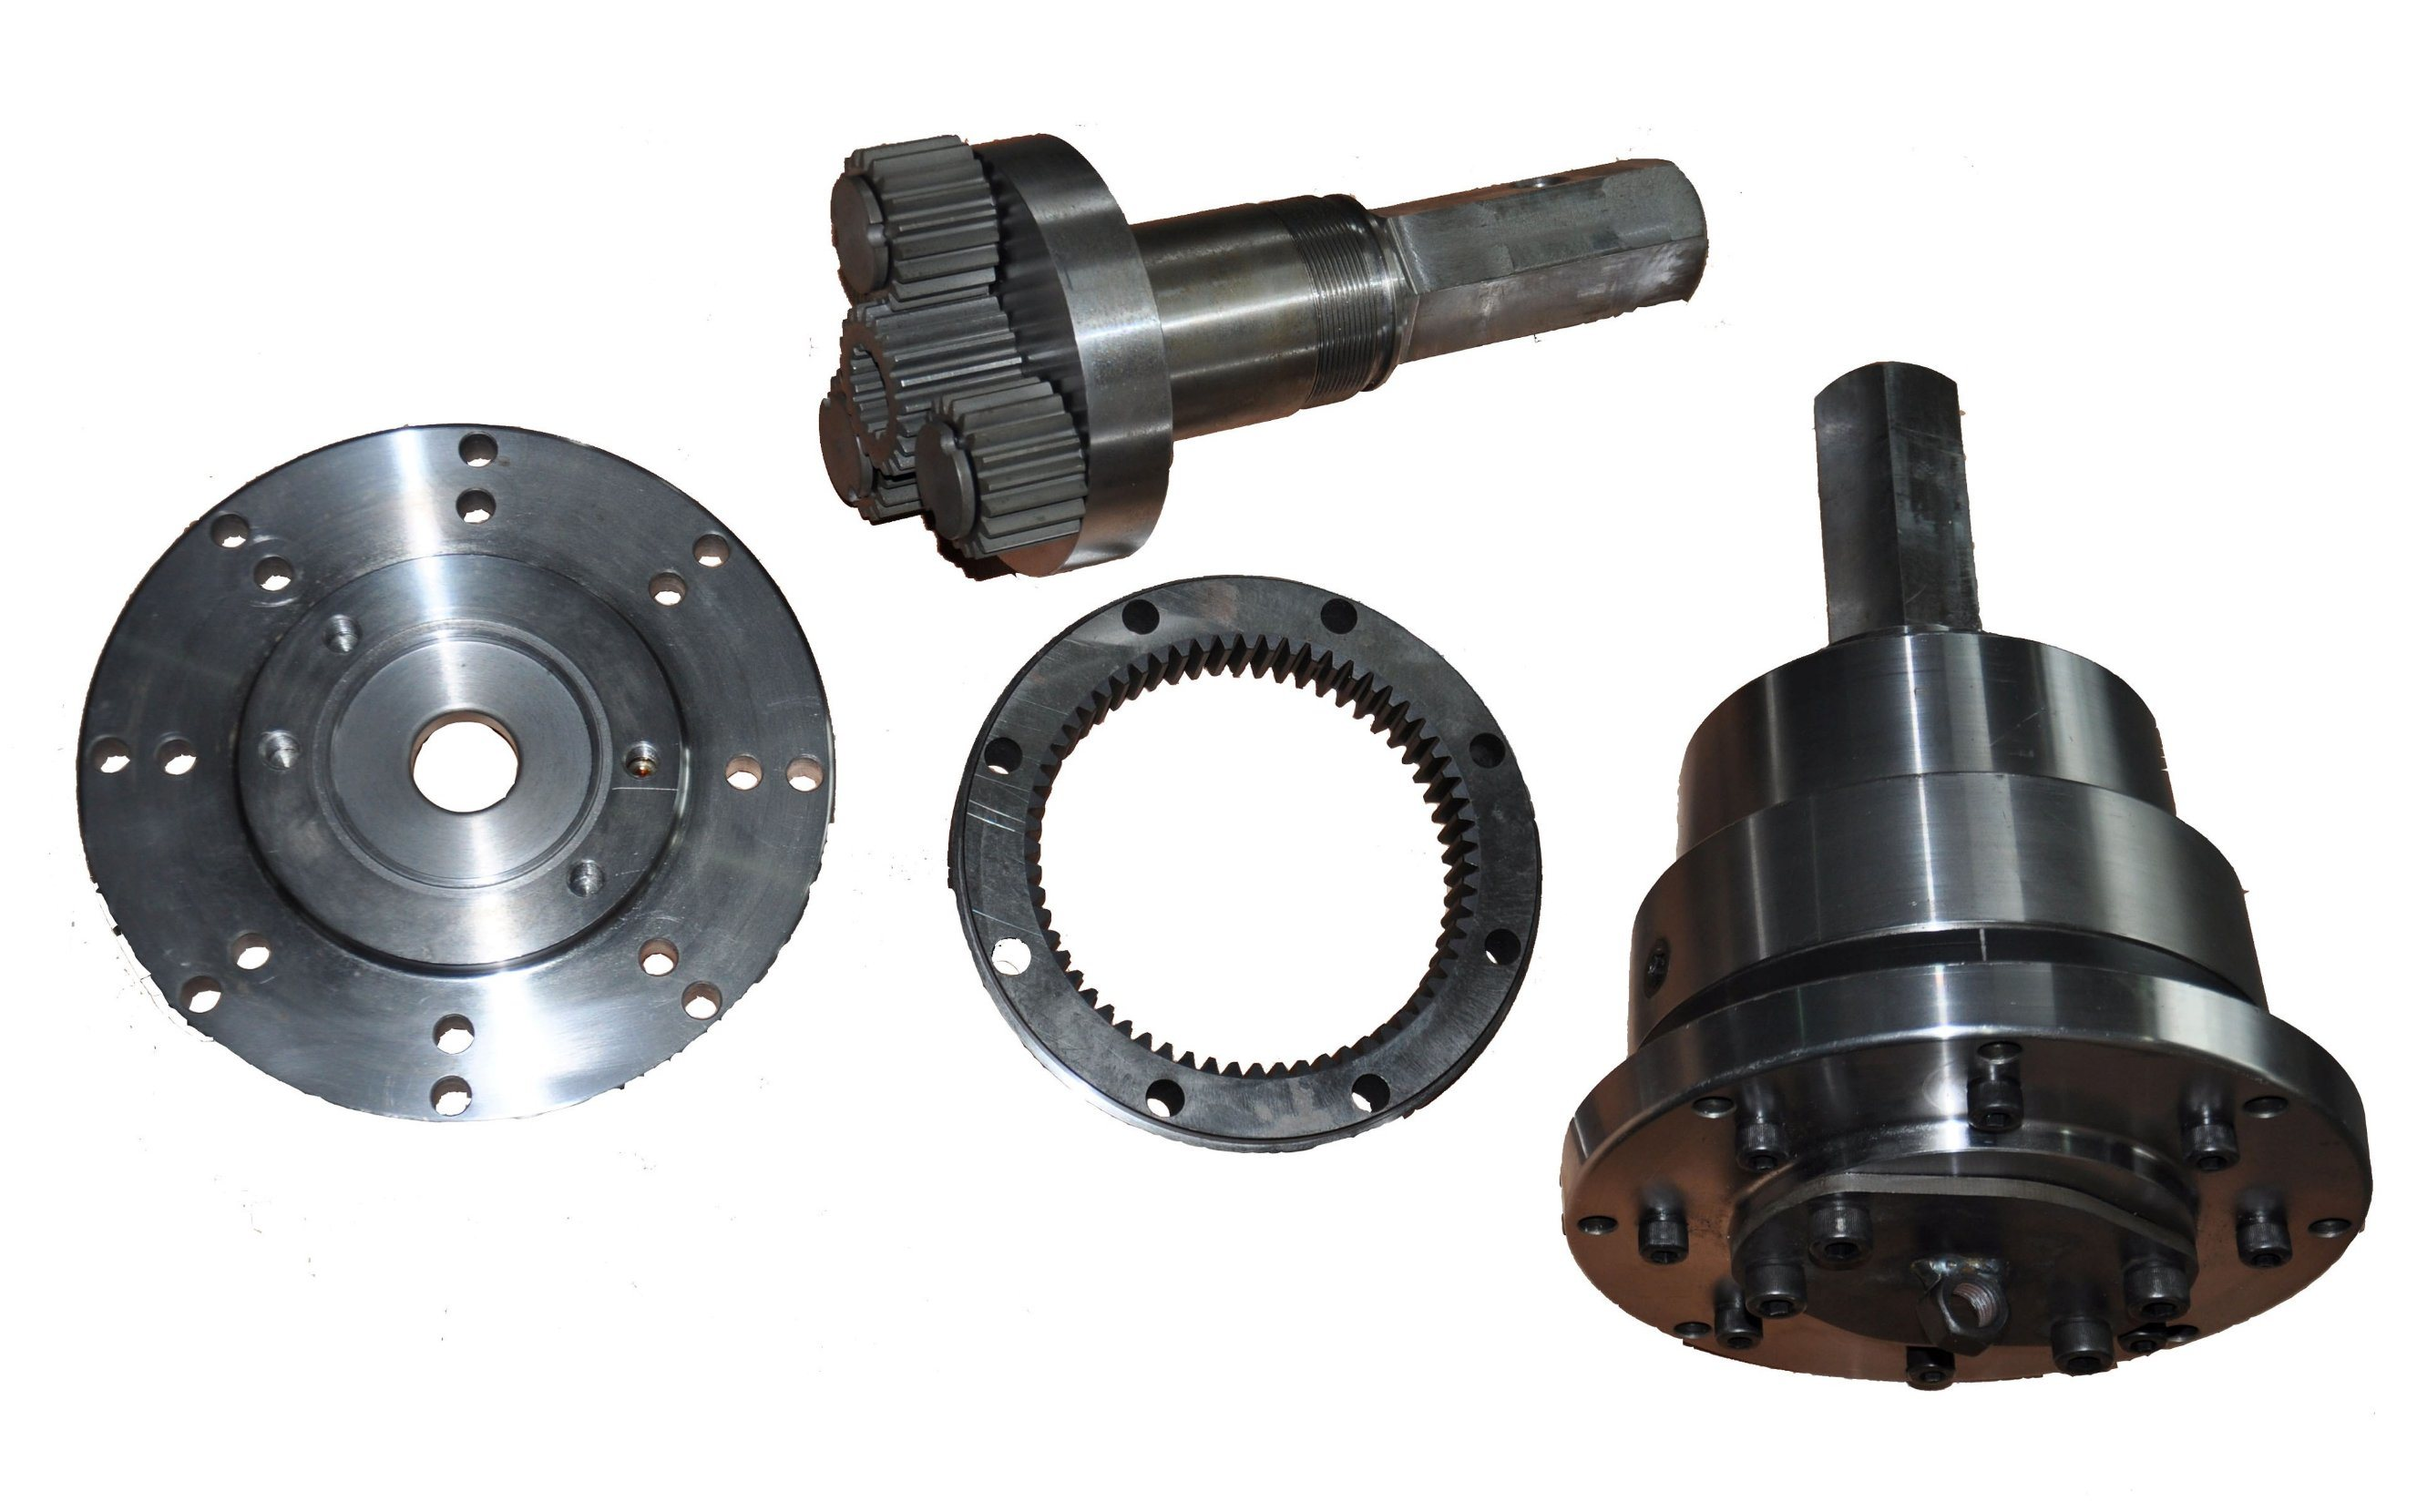 Planet Gear Reducer